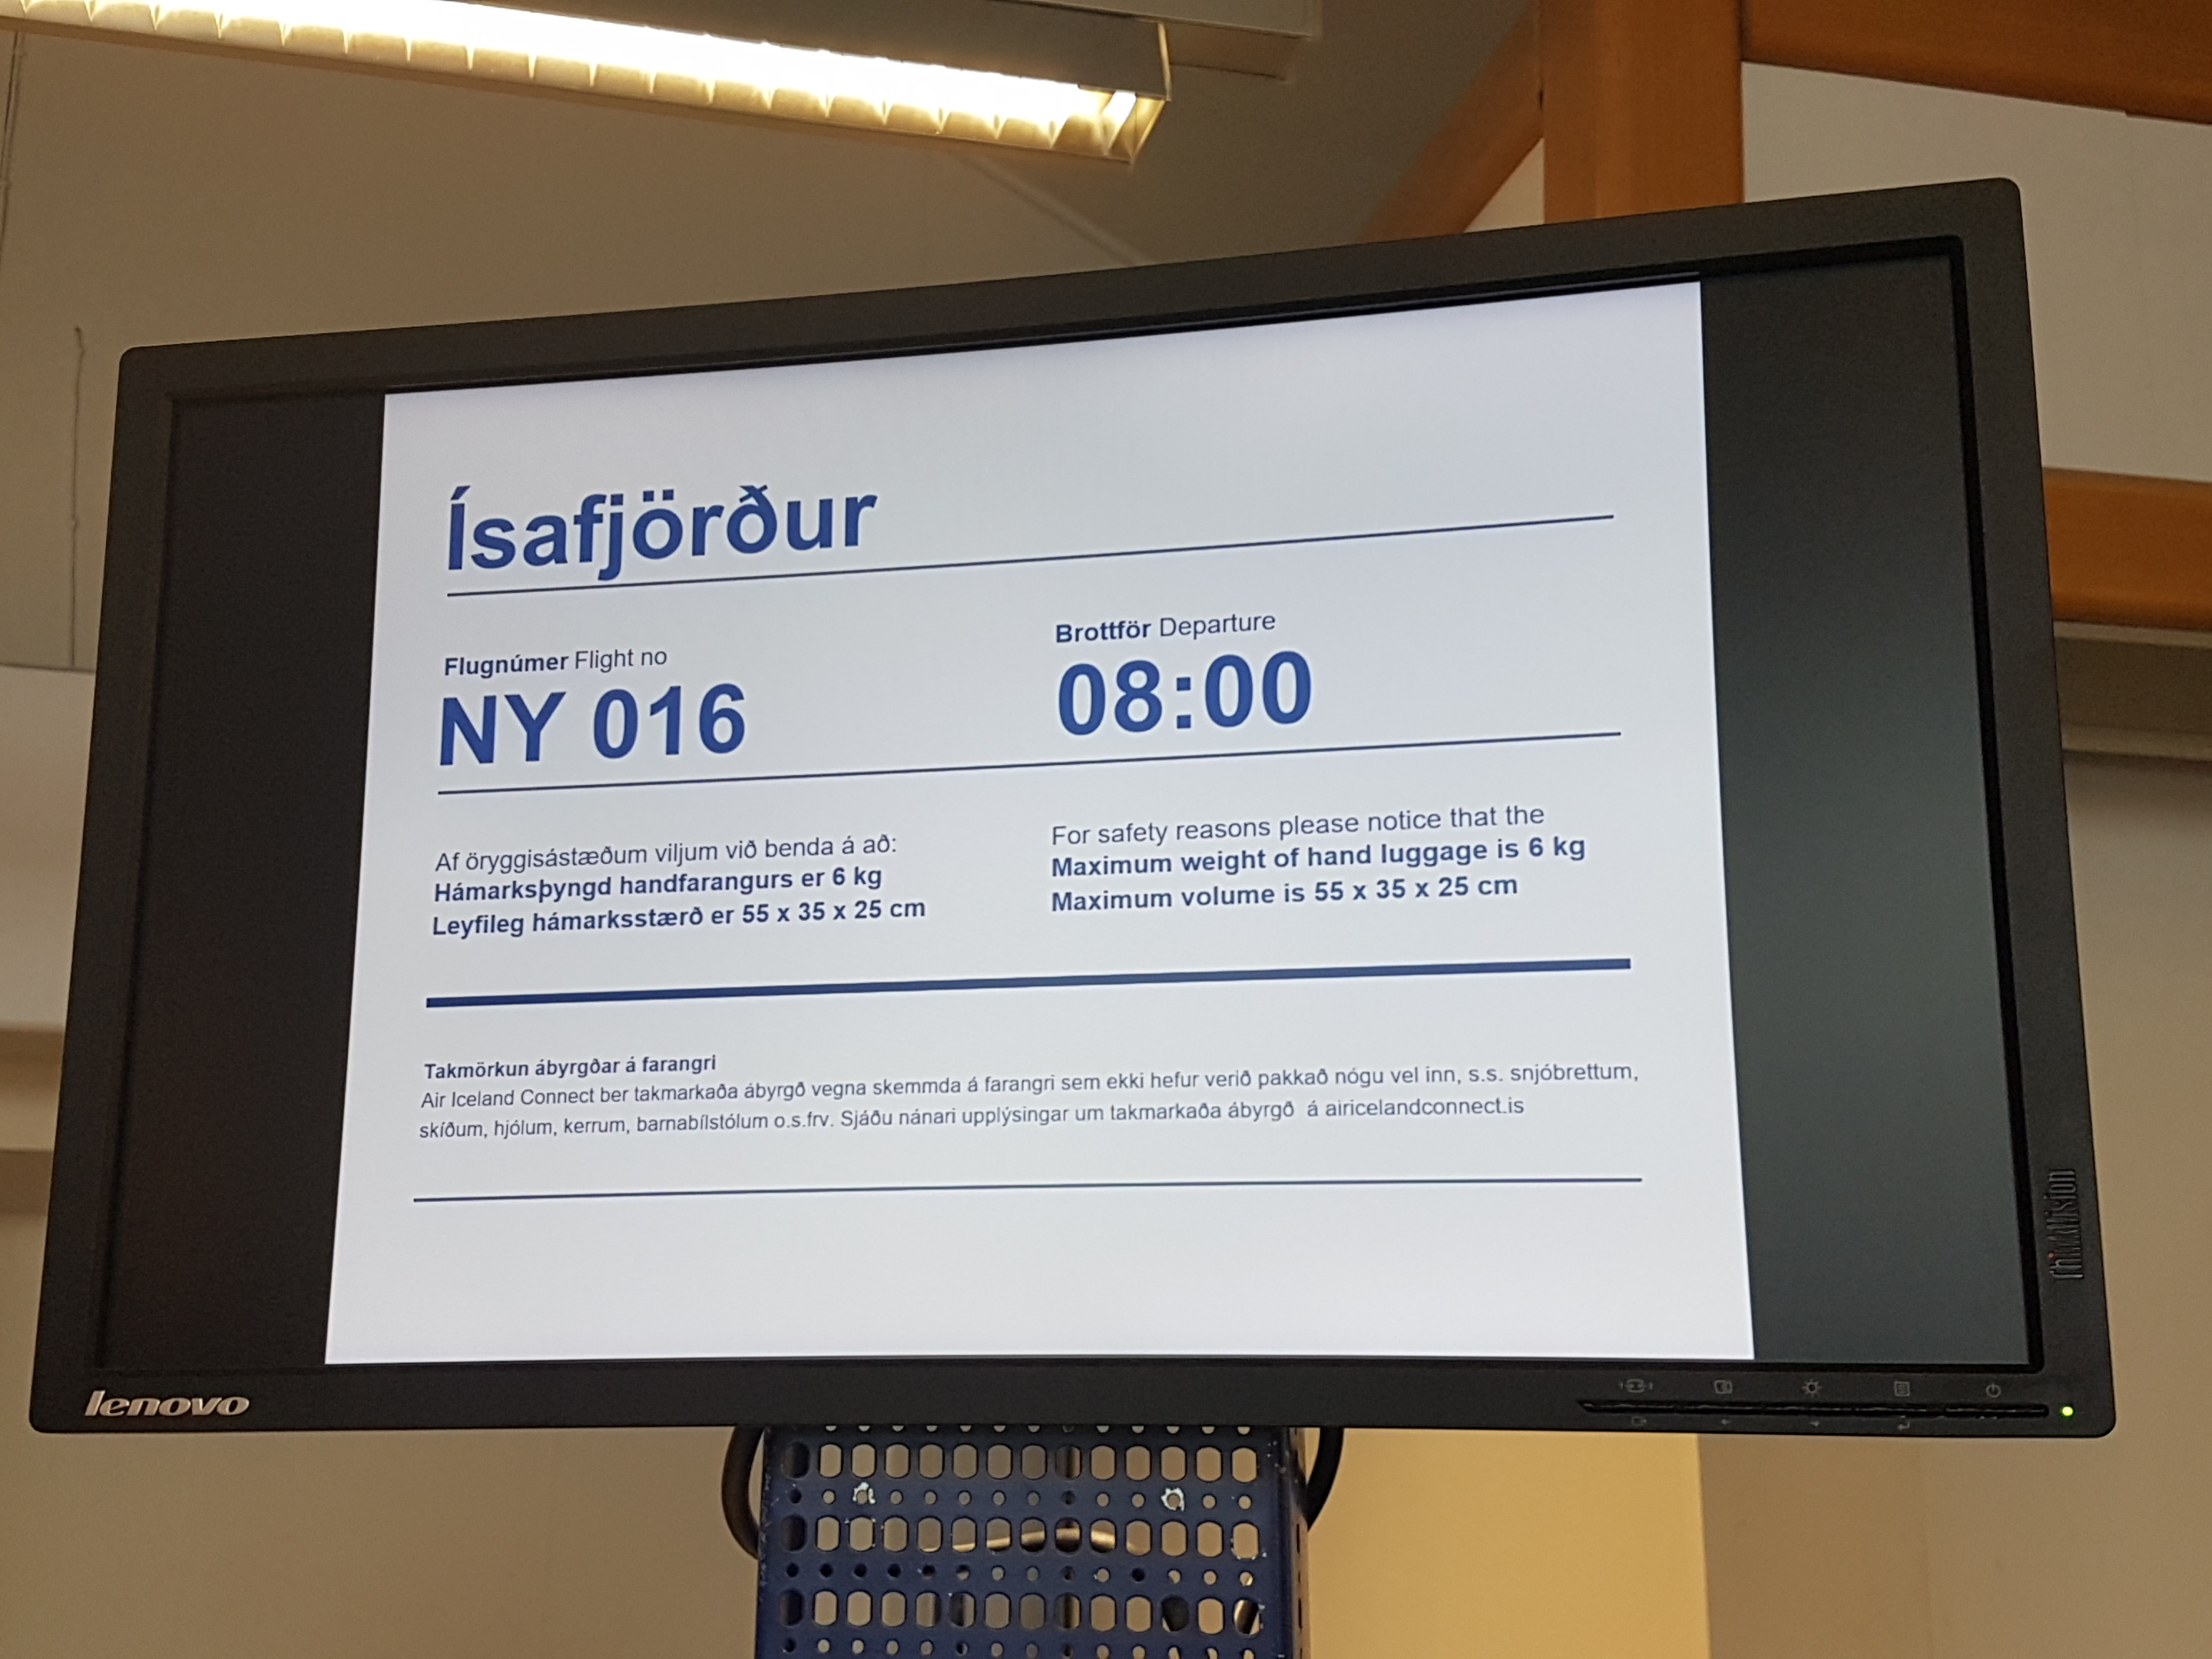 Check-in Notification at Reykjavik domestic airport.